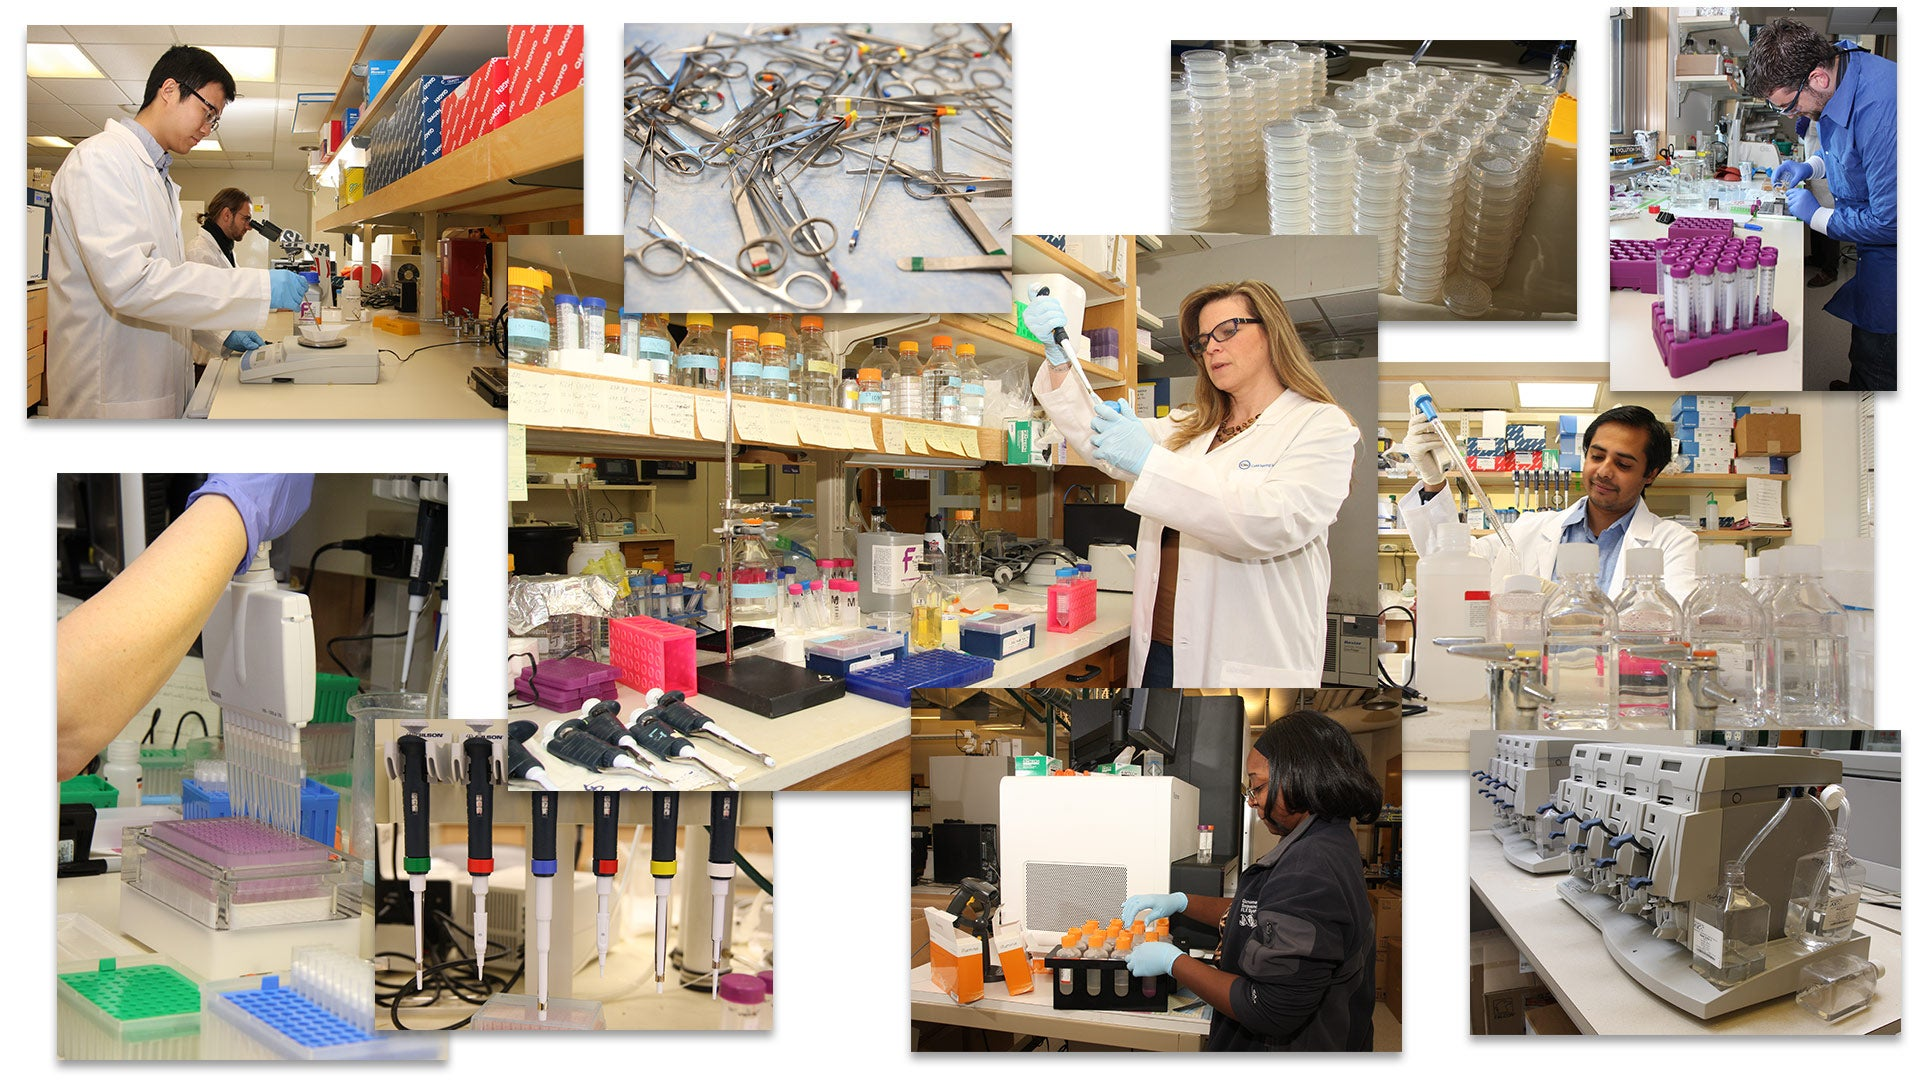 collaged photo of equipment and people using equipment